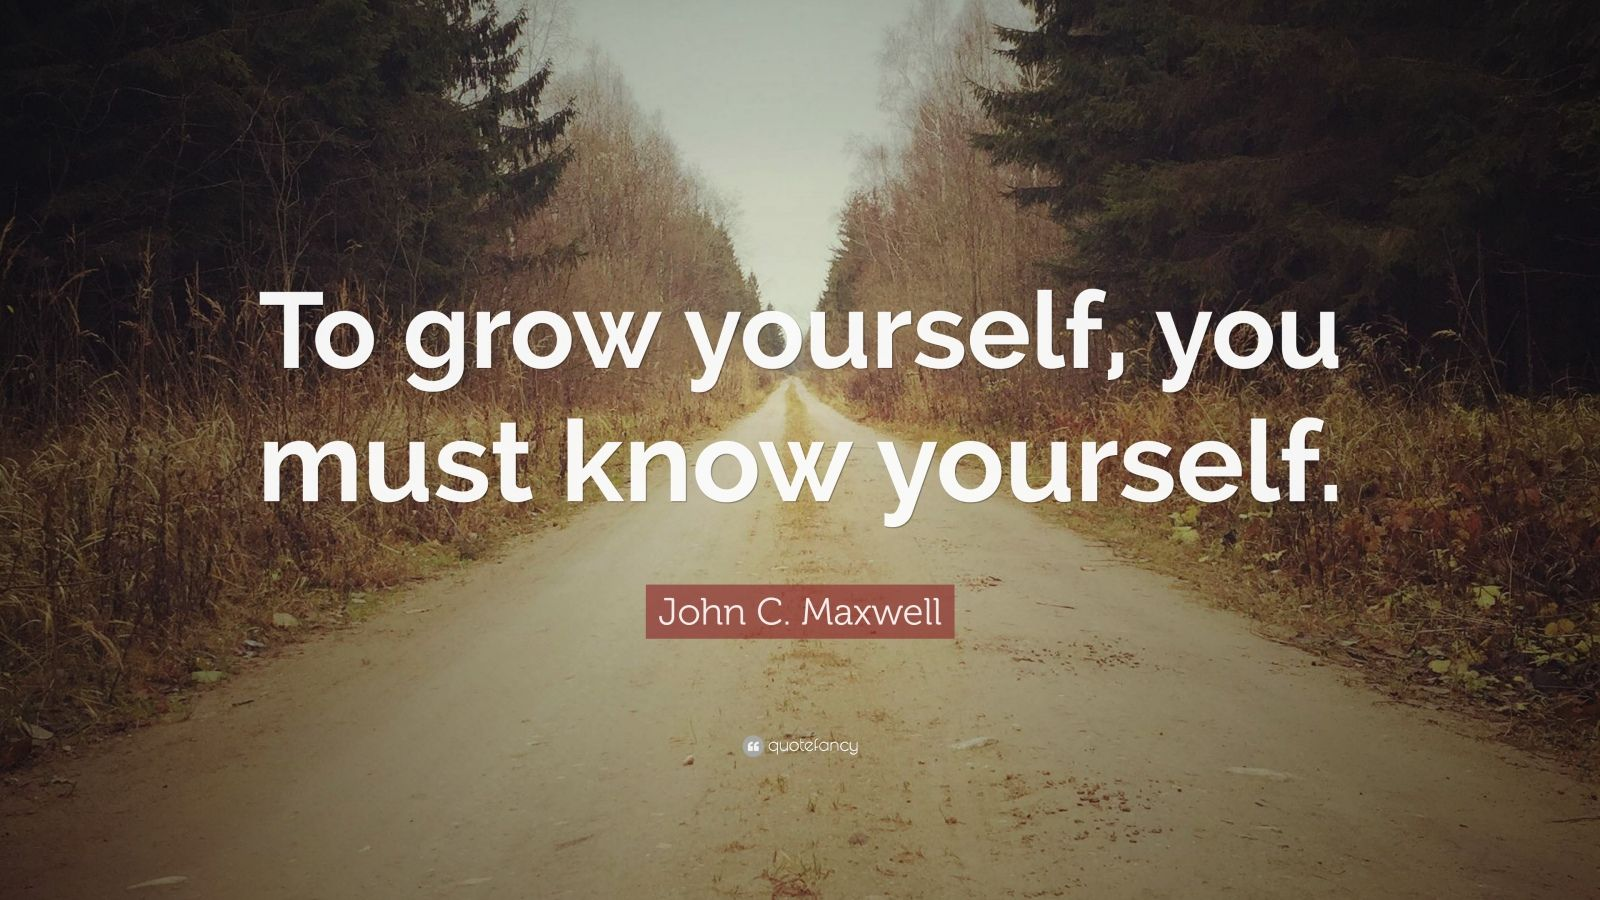 """John C. Maxwell Quote: """"To grow yourself, you must know yourself."""" (12 wallpapers) - Quotefancy"""